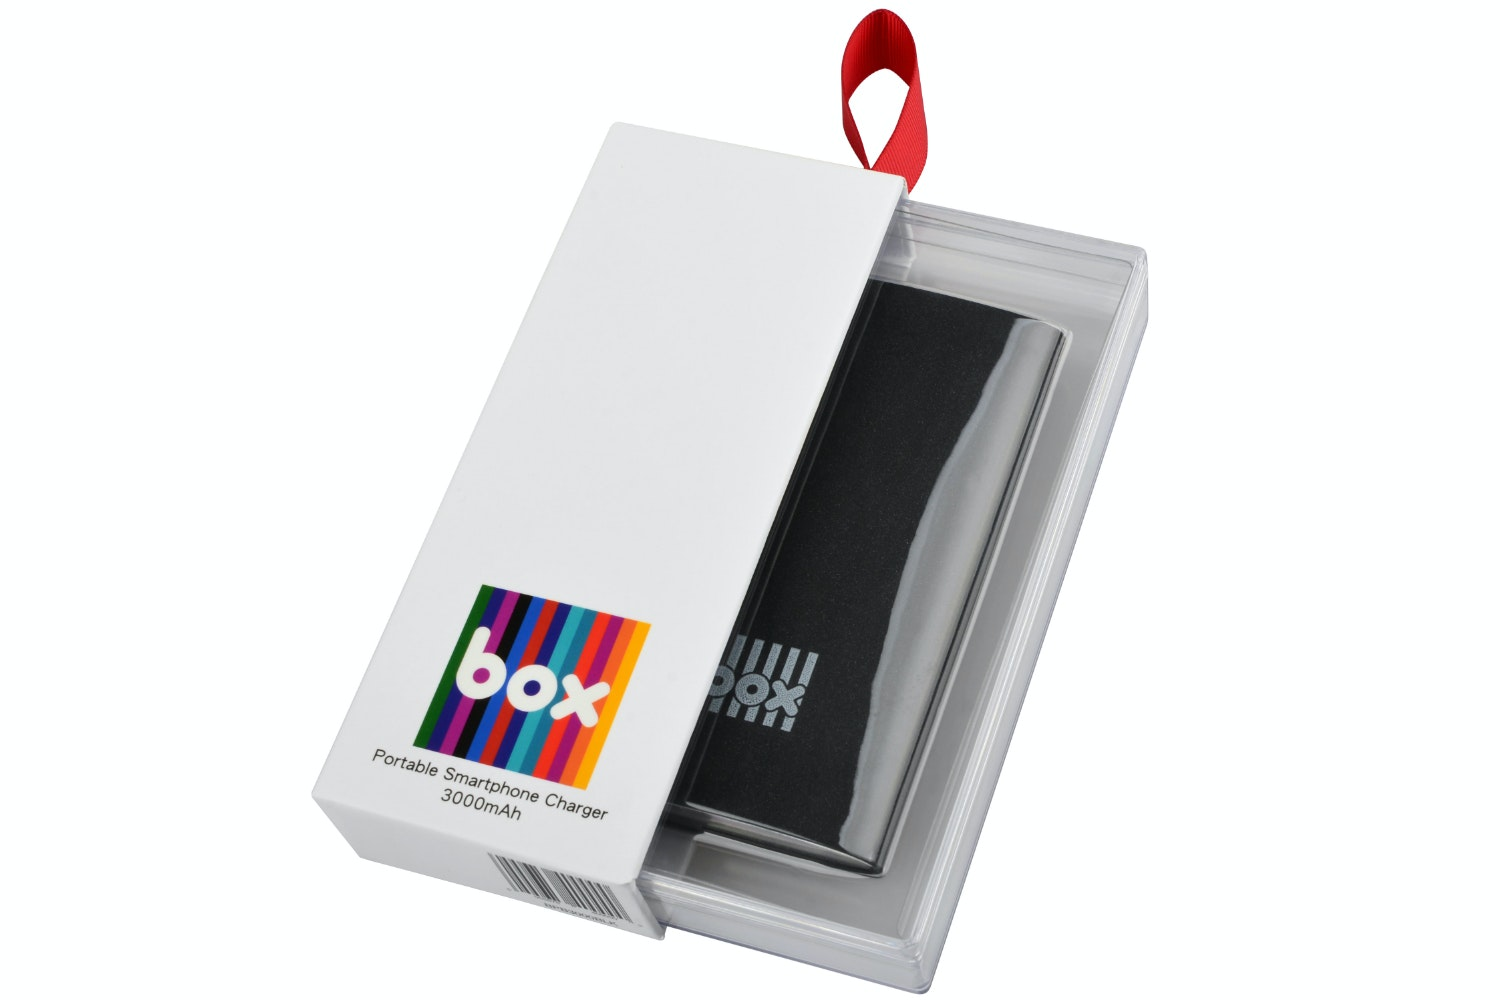 Box Smartphone Charger | Black